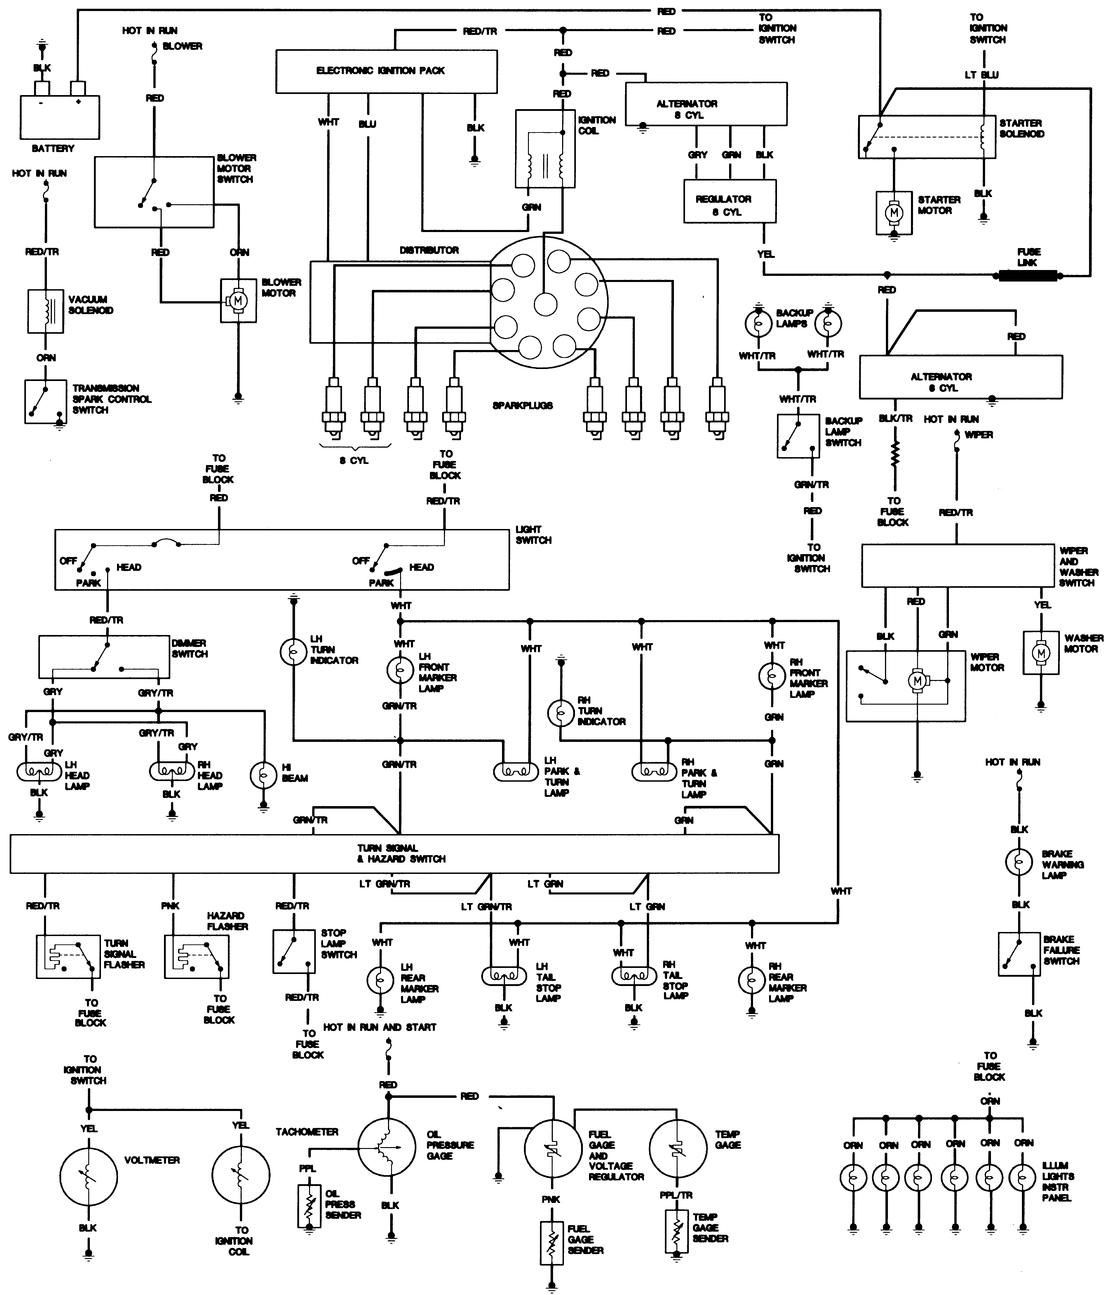 1980 cj5 wiring diagram furthermore jeep cj7 tachometer wiring diagram along with jeep cj5 steering column